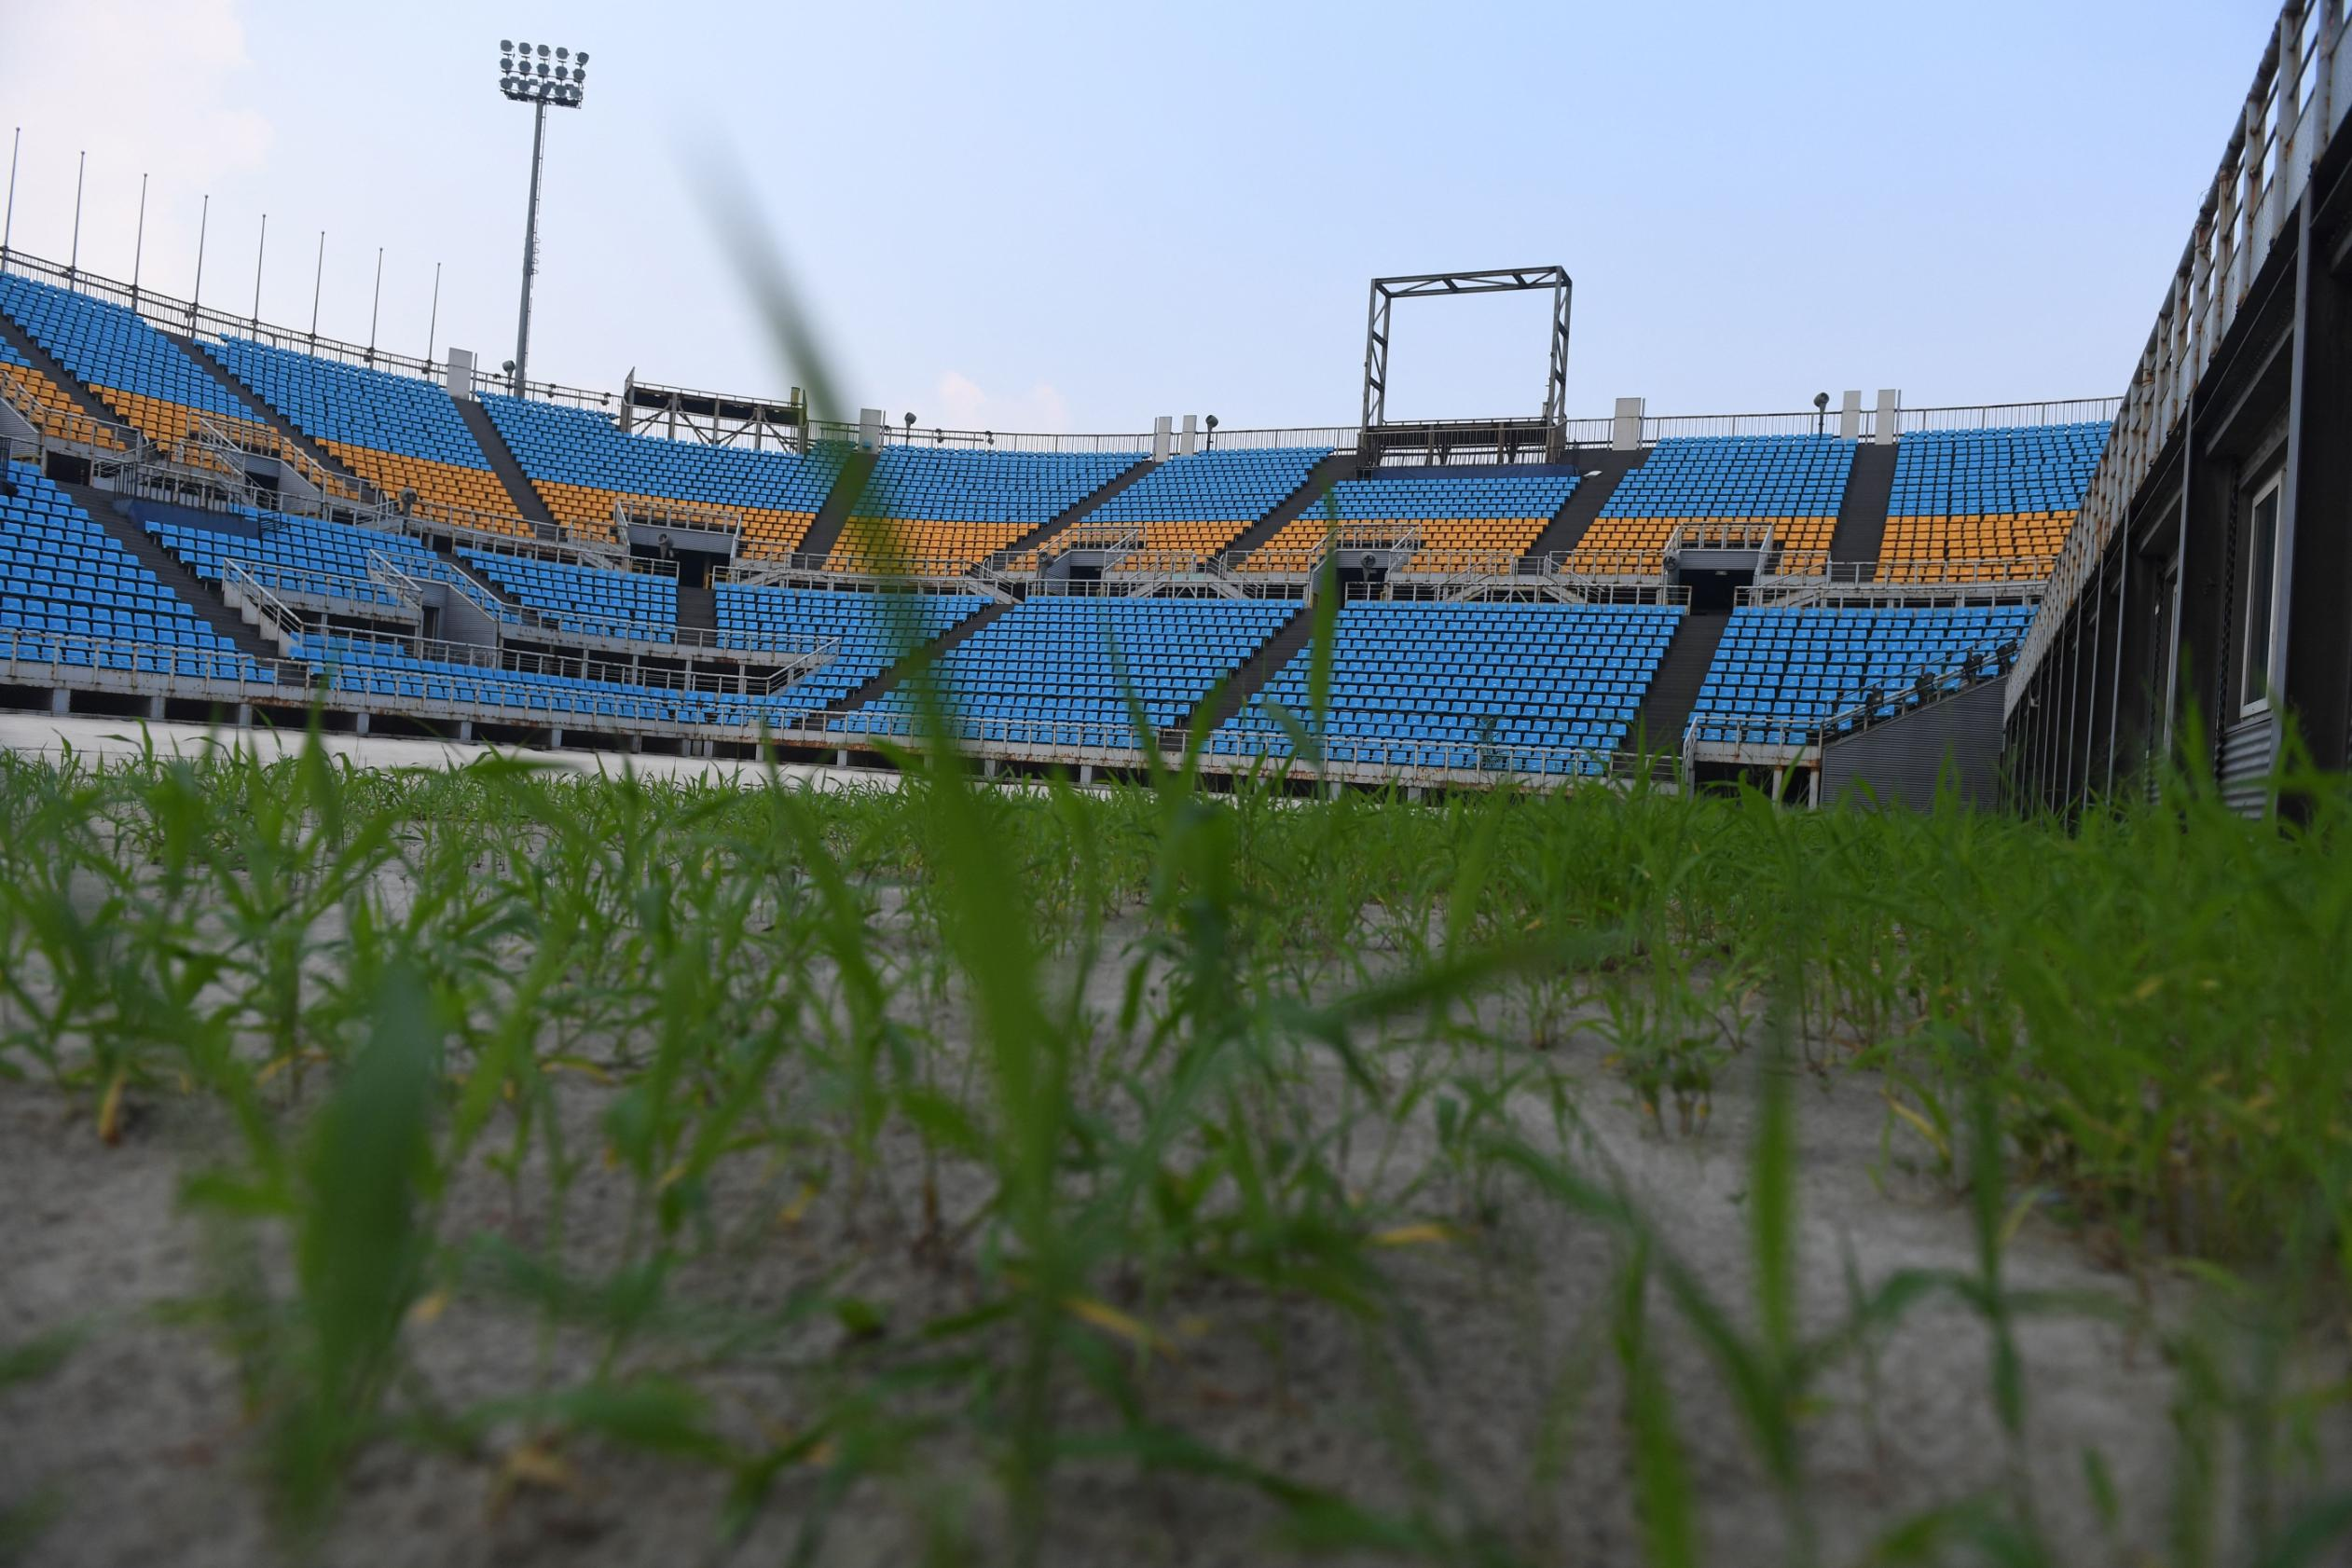 Beijing S Abandoned Olympic Venues In Pictures Cnn Travel